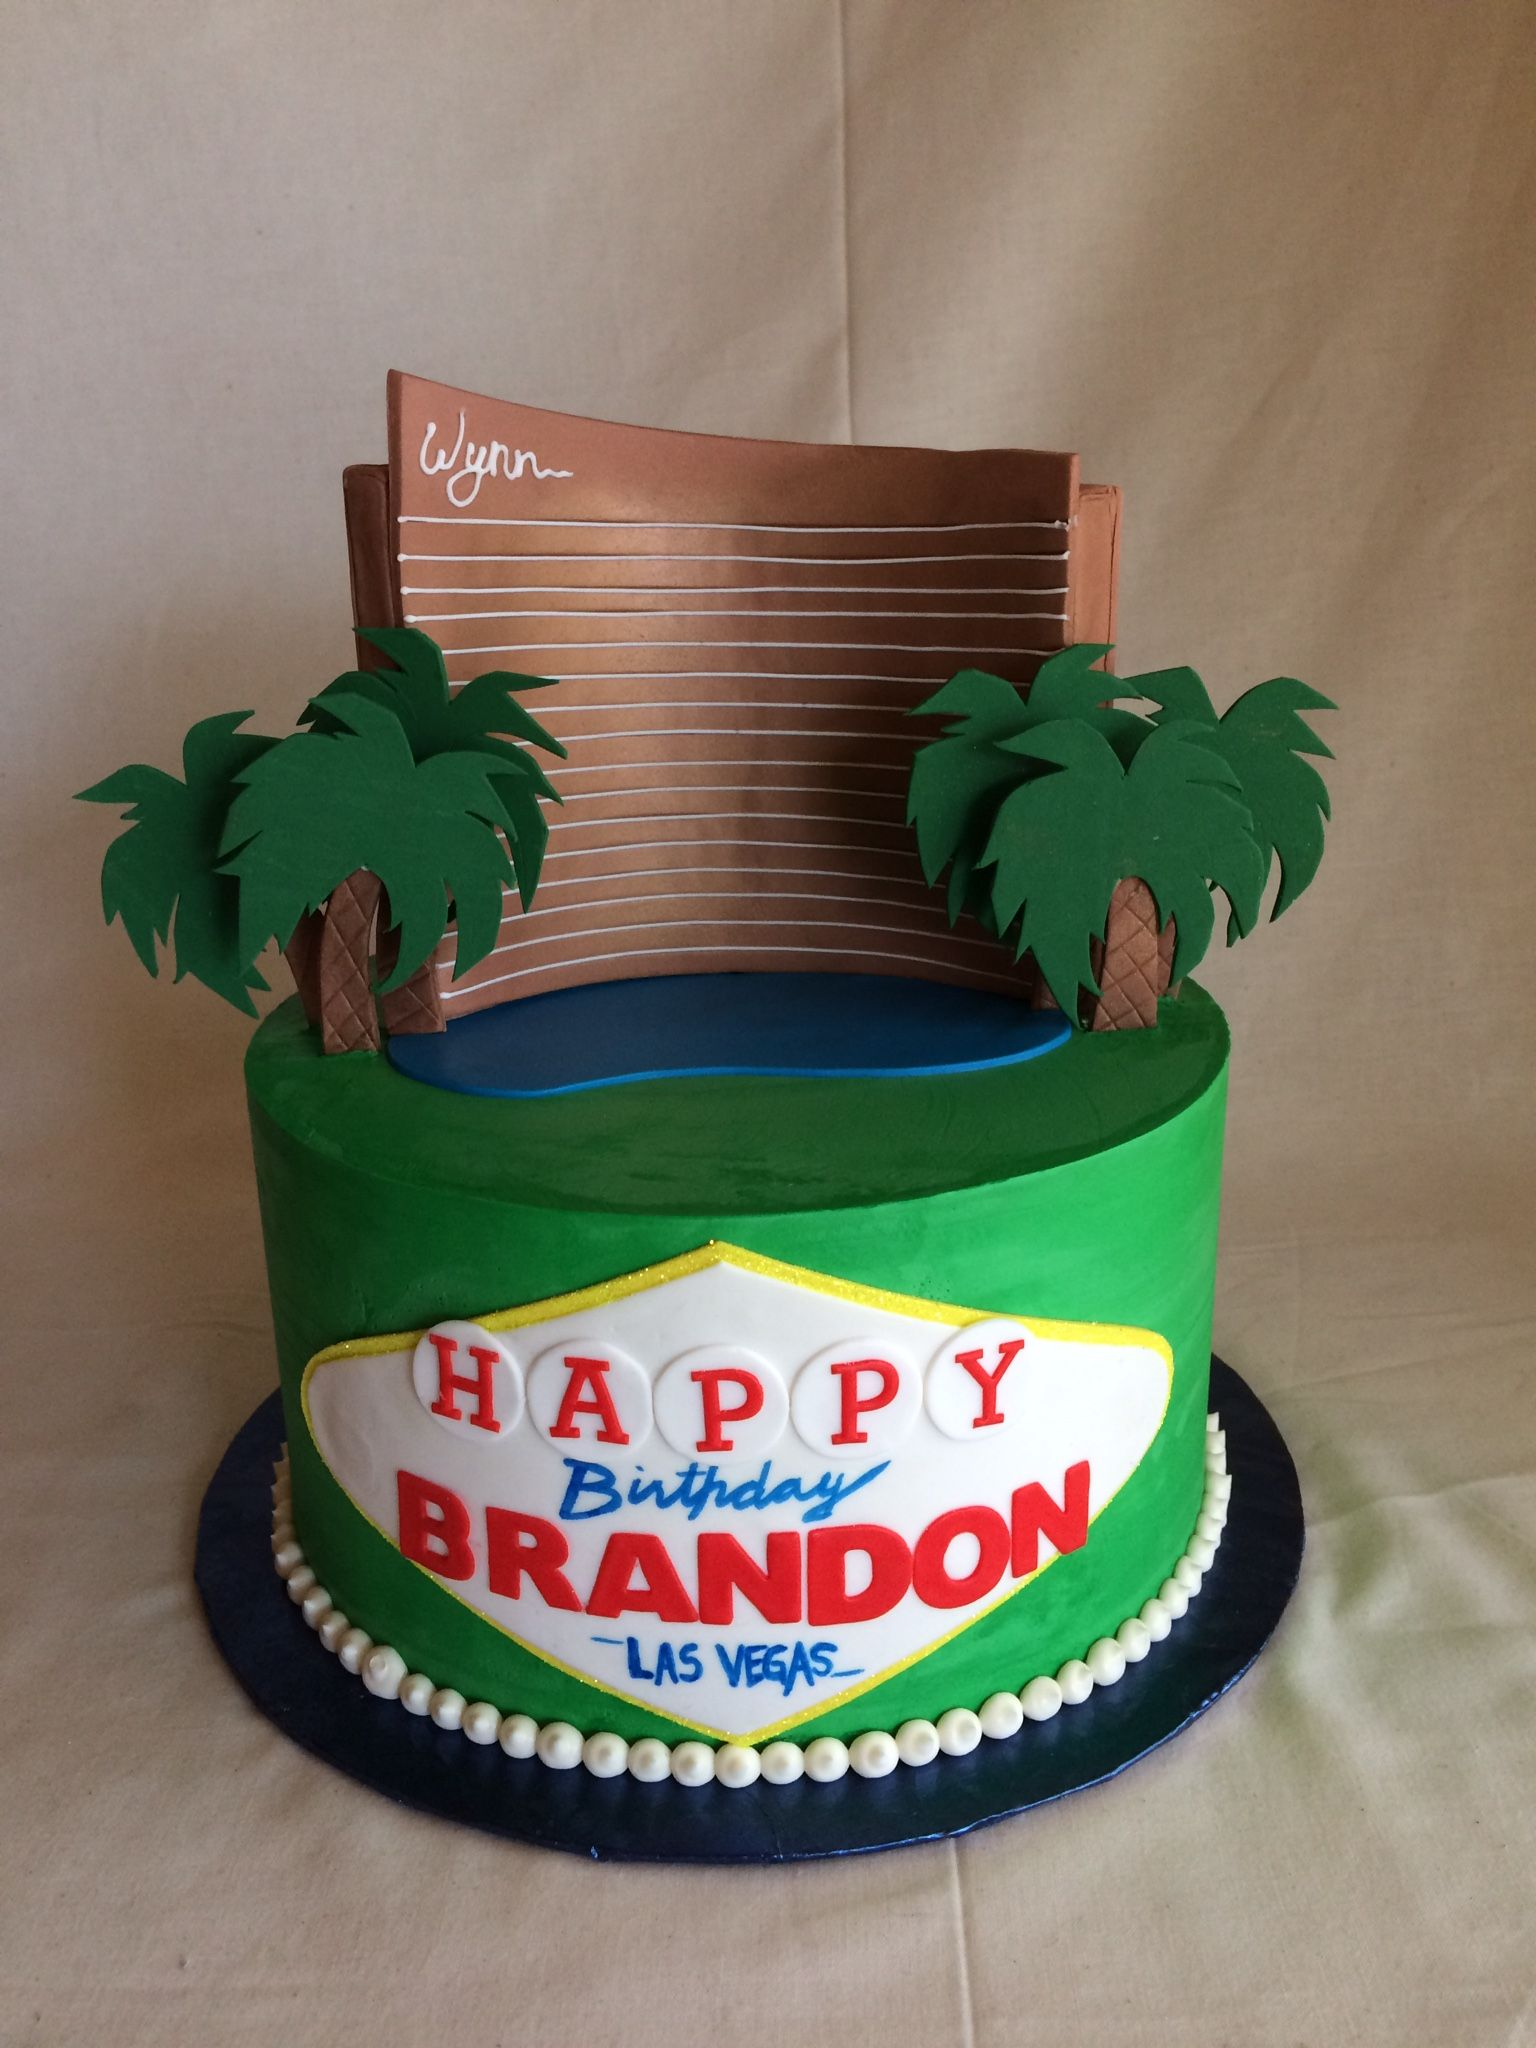 Marvelous Birthday Cake Las Vegas Wynn With Images Cake Custom Cakes Funny Birthday Cards Online Sheoxdamsfinfo